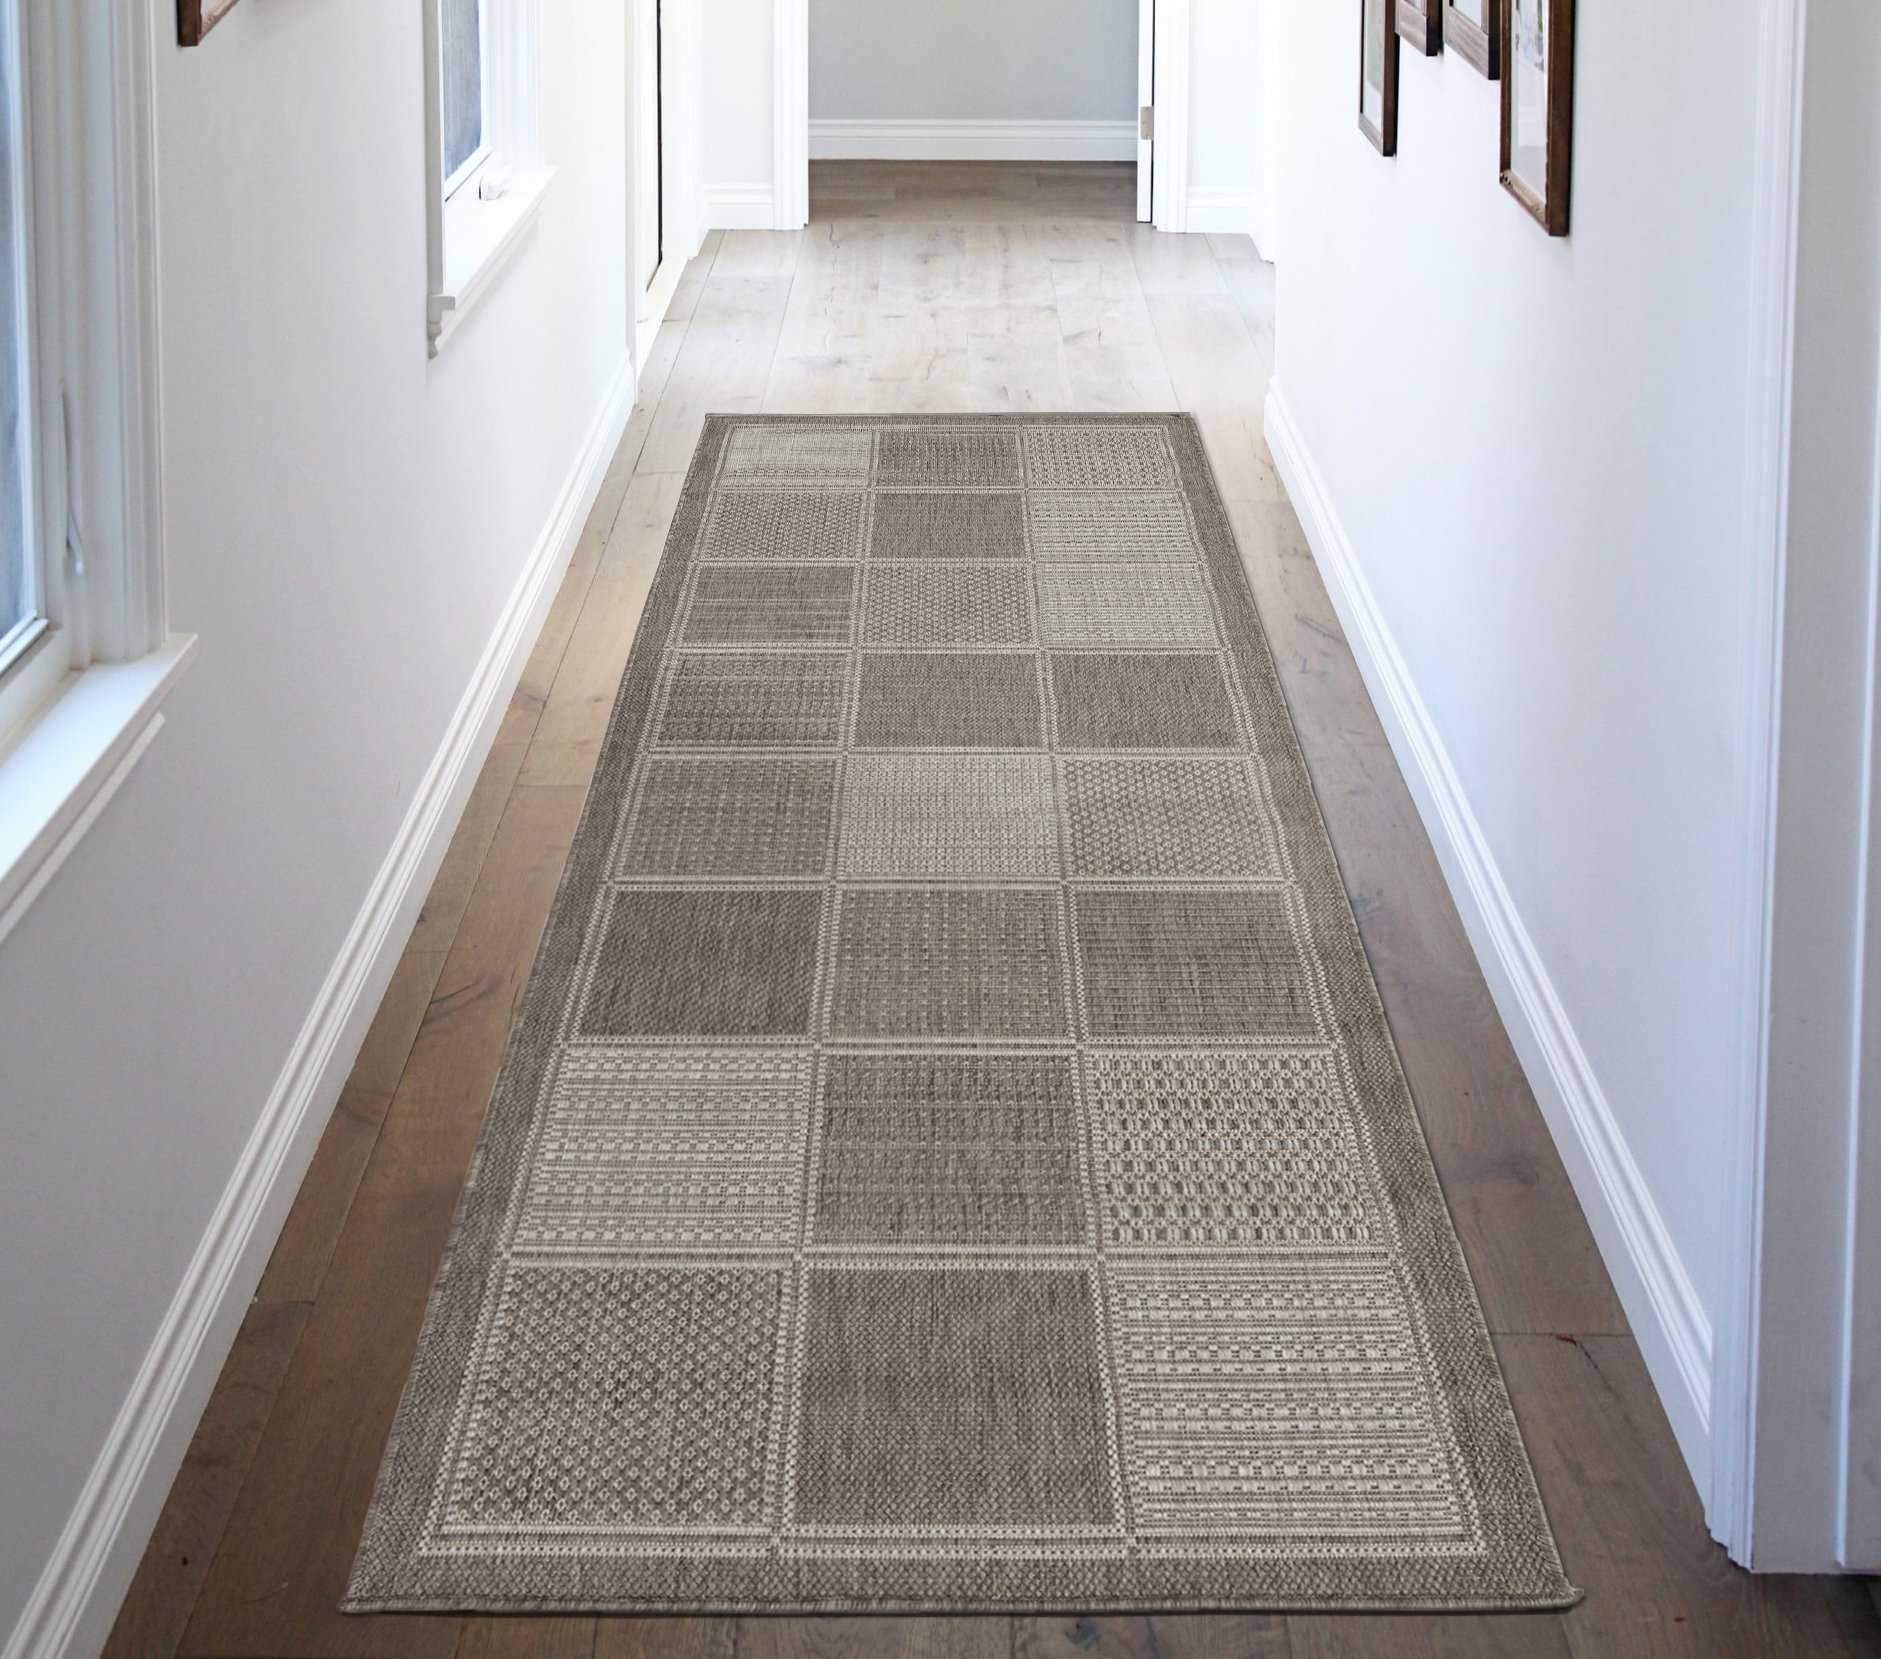 Ottomanson Jardin Collection Contemporary Boxes Design Indoor/Outdoor Jute Backing Runner Rug, Grey, 2'7'' x 7'0''